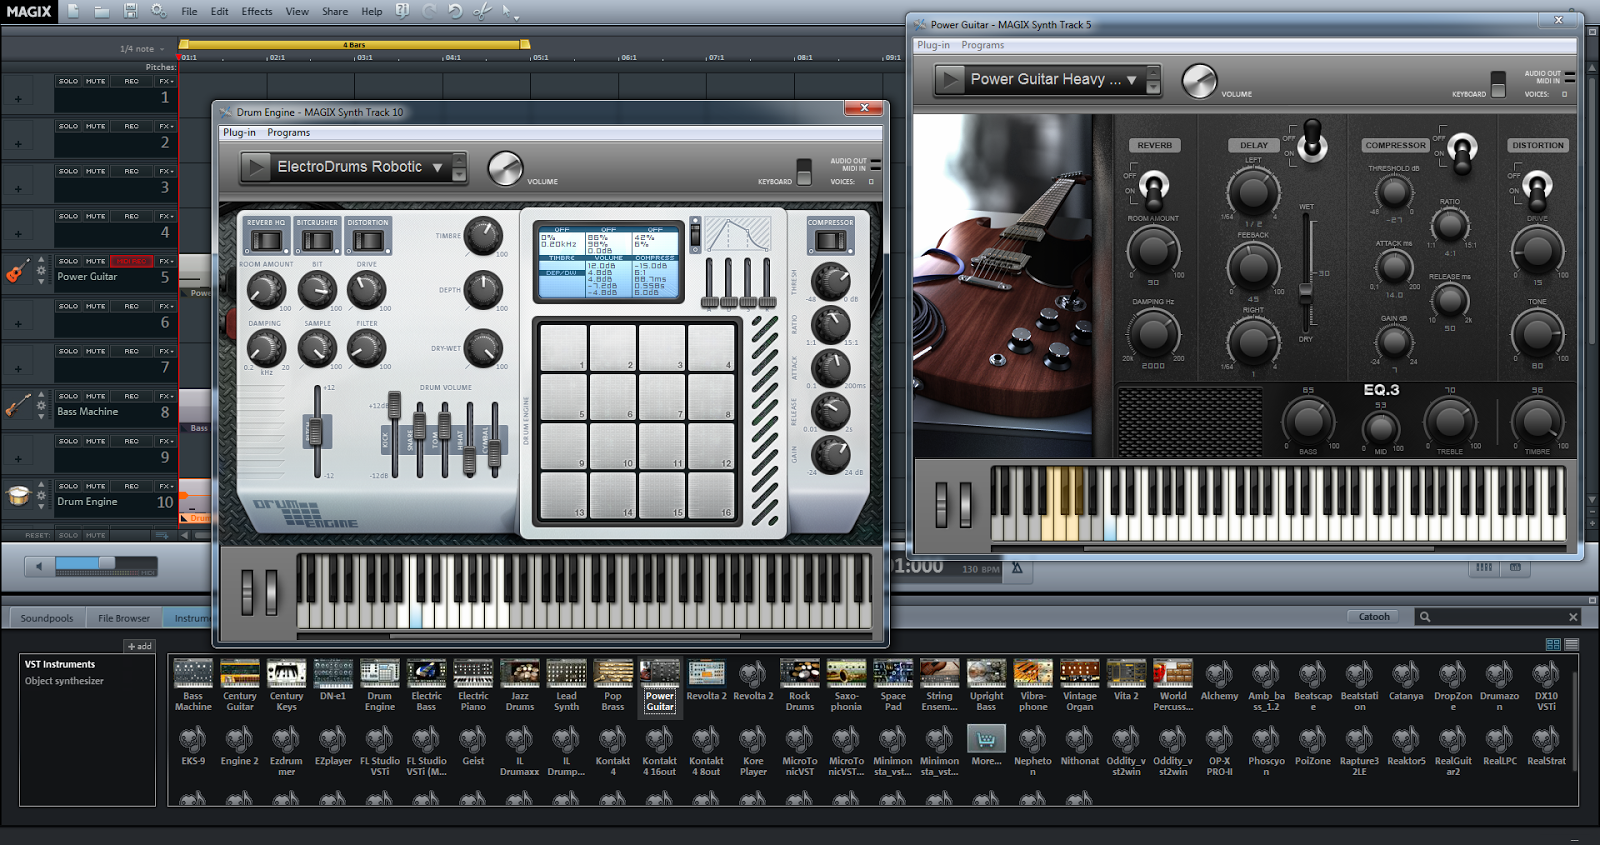 maker music magix premium making instruments synapse software drum guitar engine power circuit many virtual professional above very technology exciting